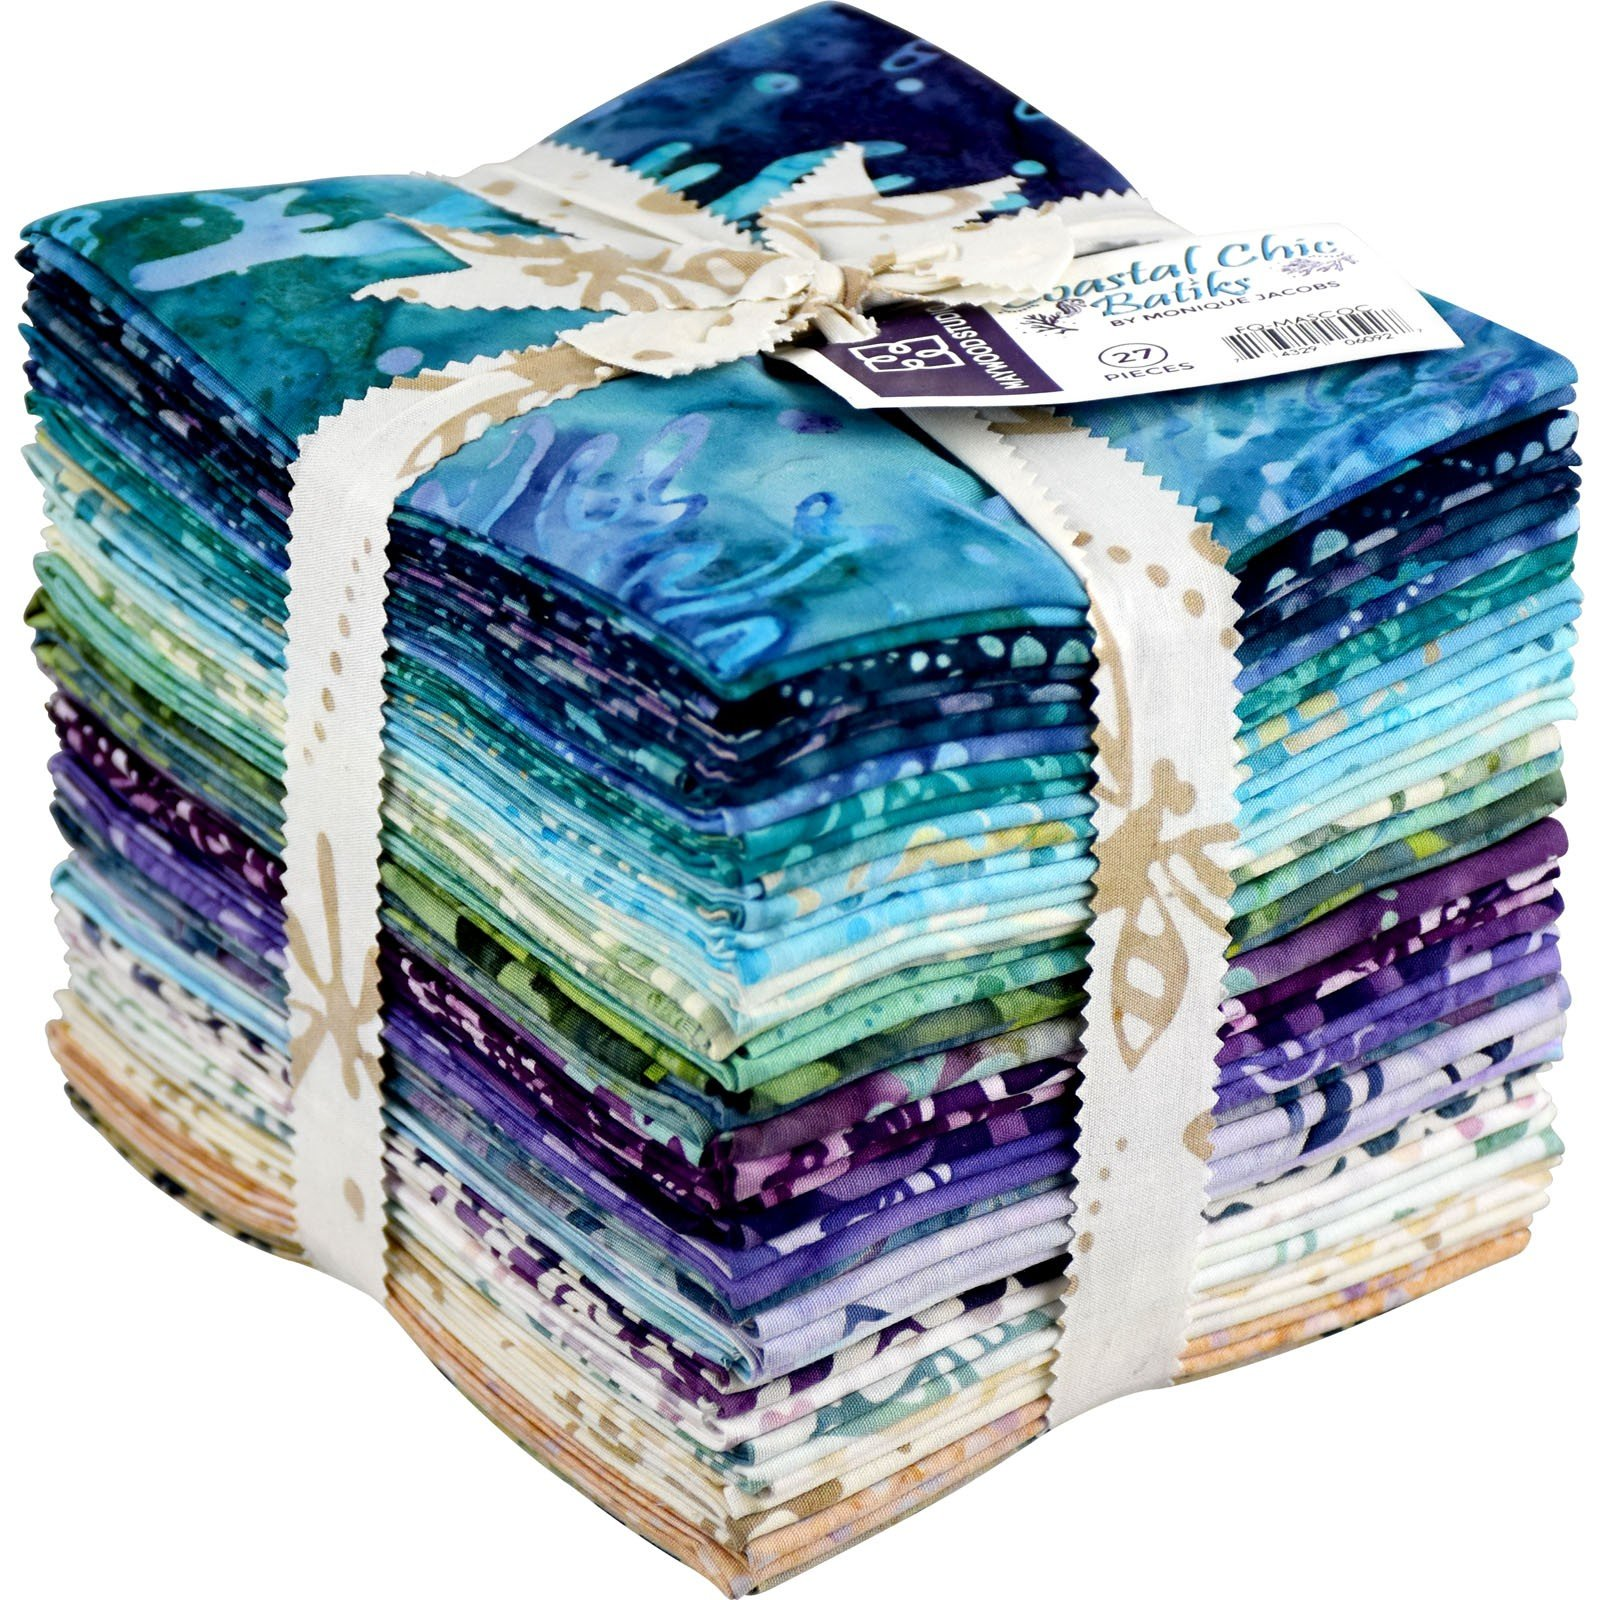 Coastal Chic Batik Fat Quarter Stack -27